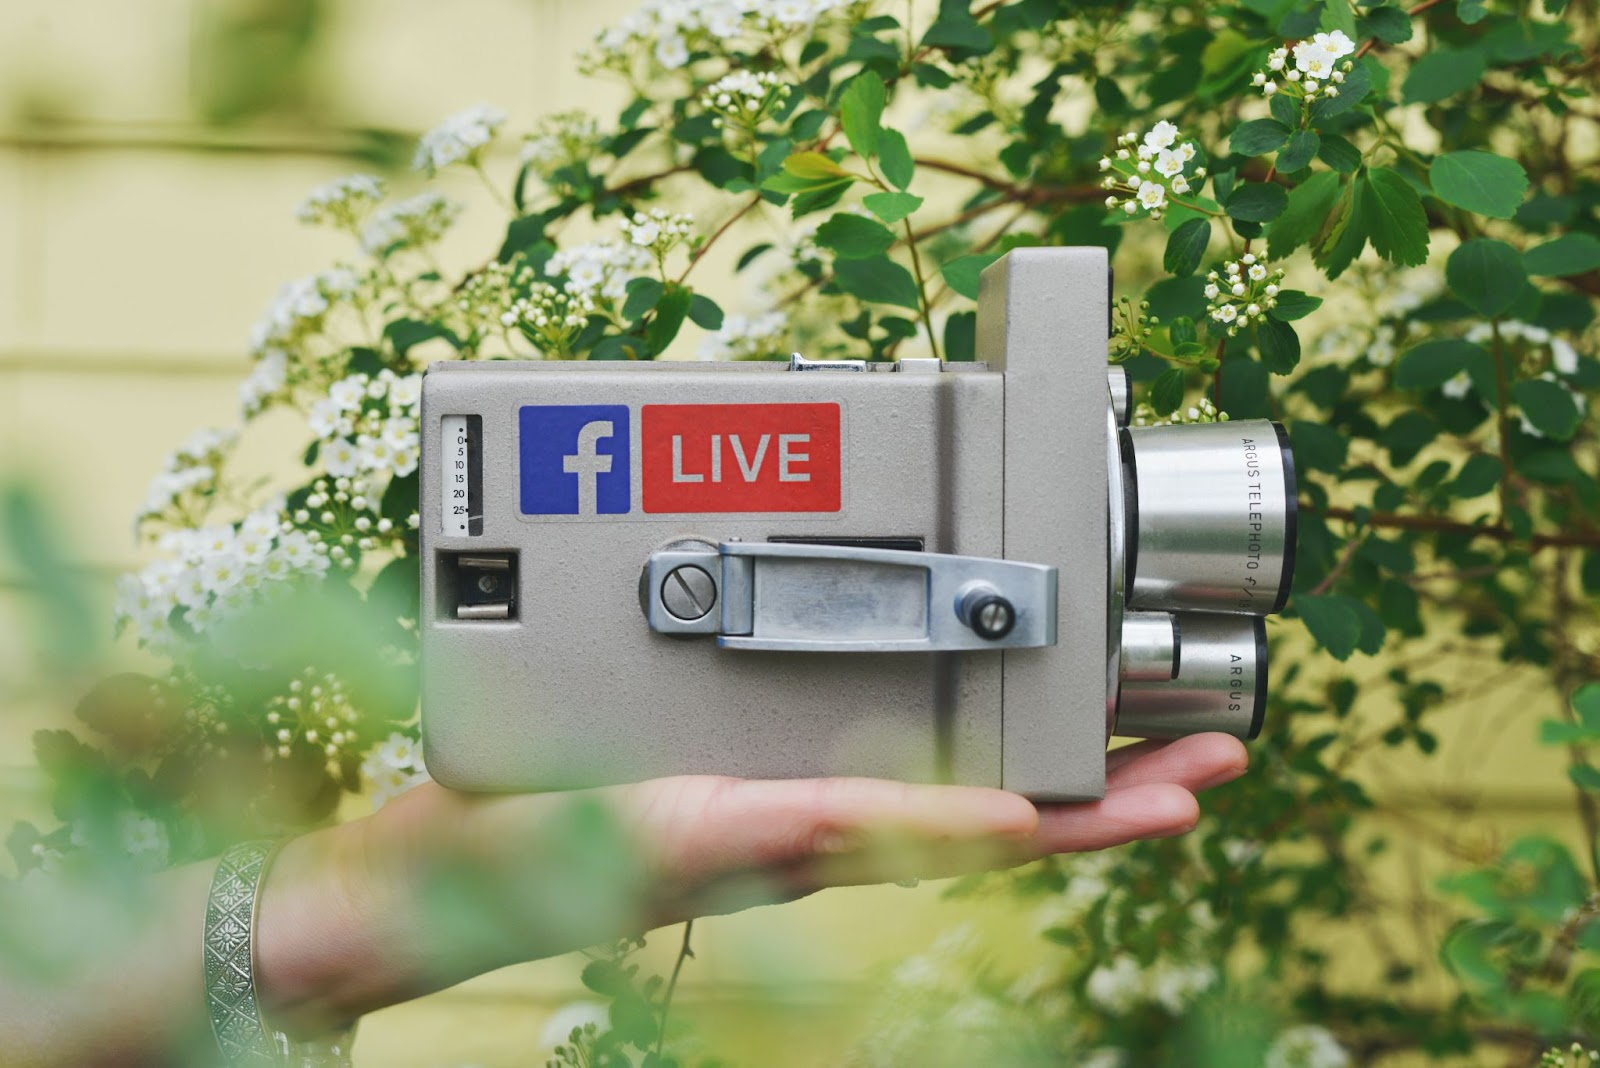 Live videos allow real-time connection with your audience.